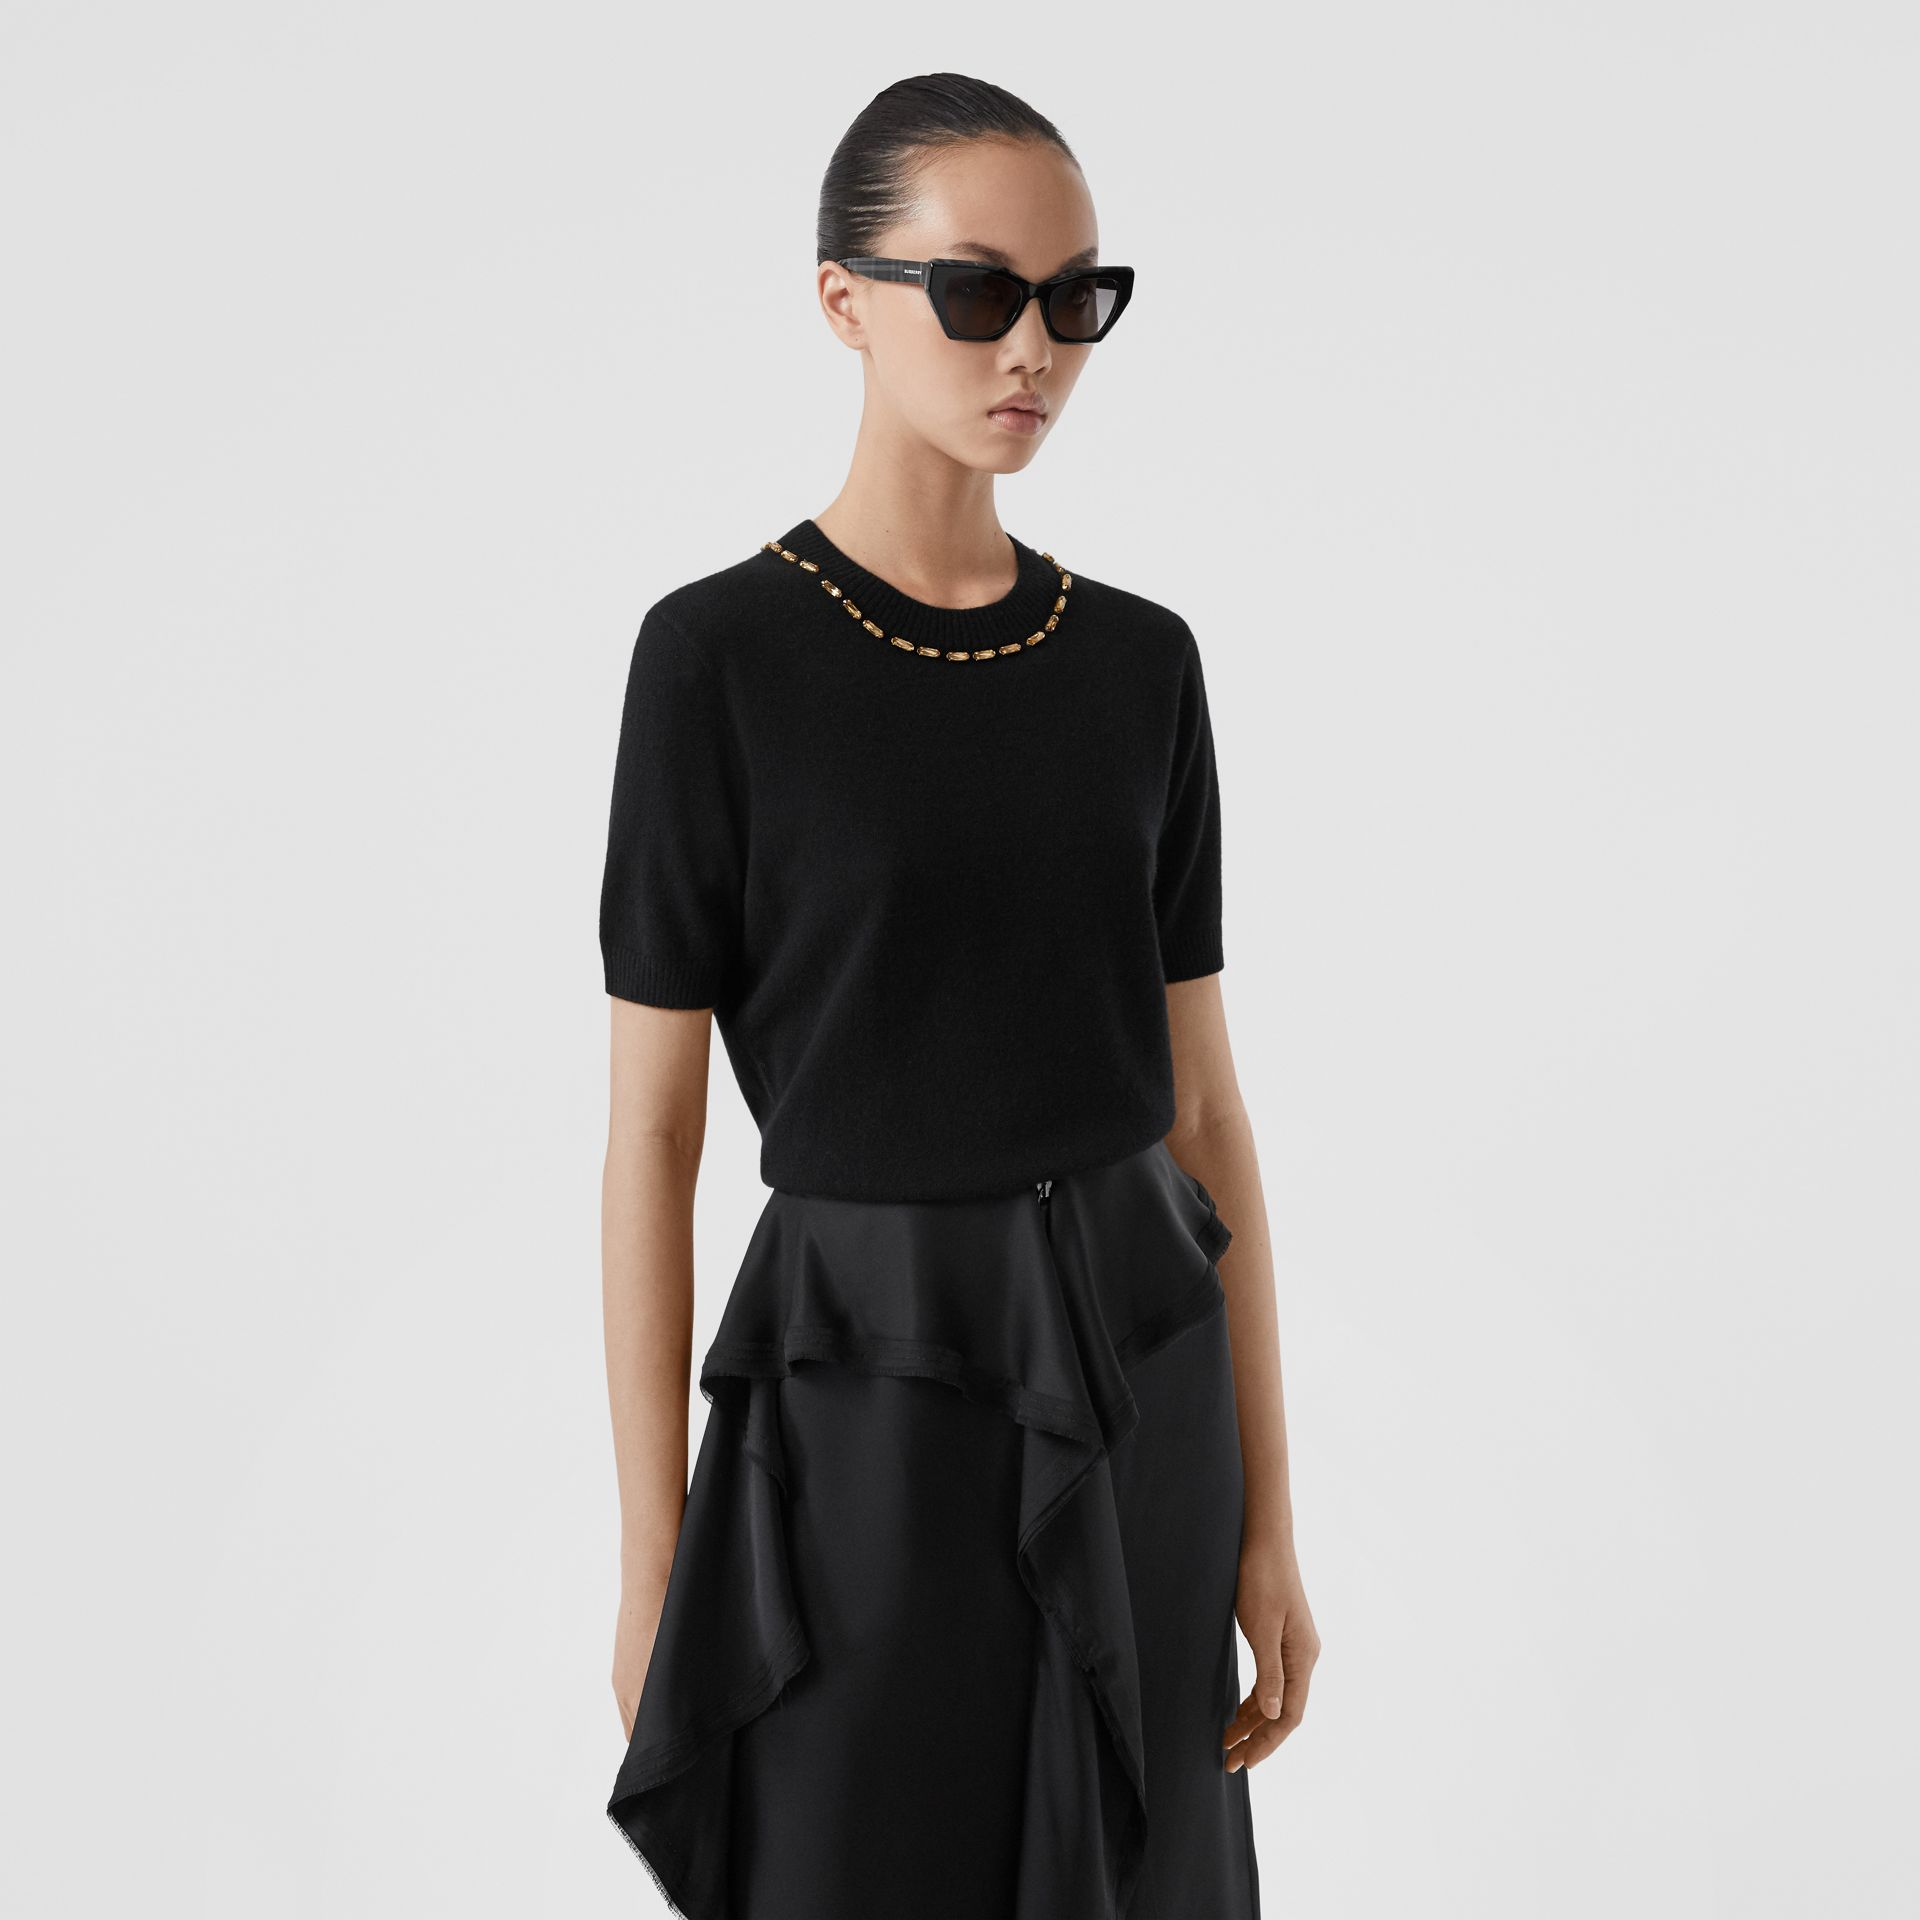 Embellished Cashmere Top in Black - Women | Burberry - gallery image 4